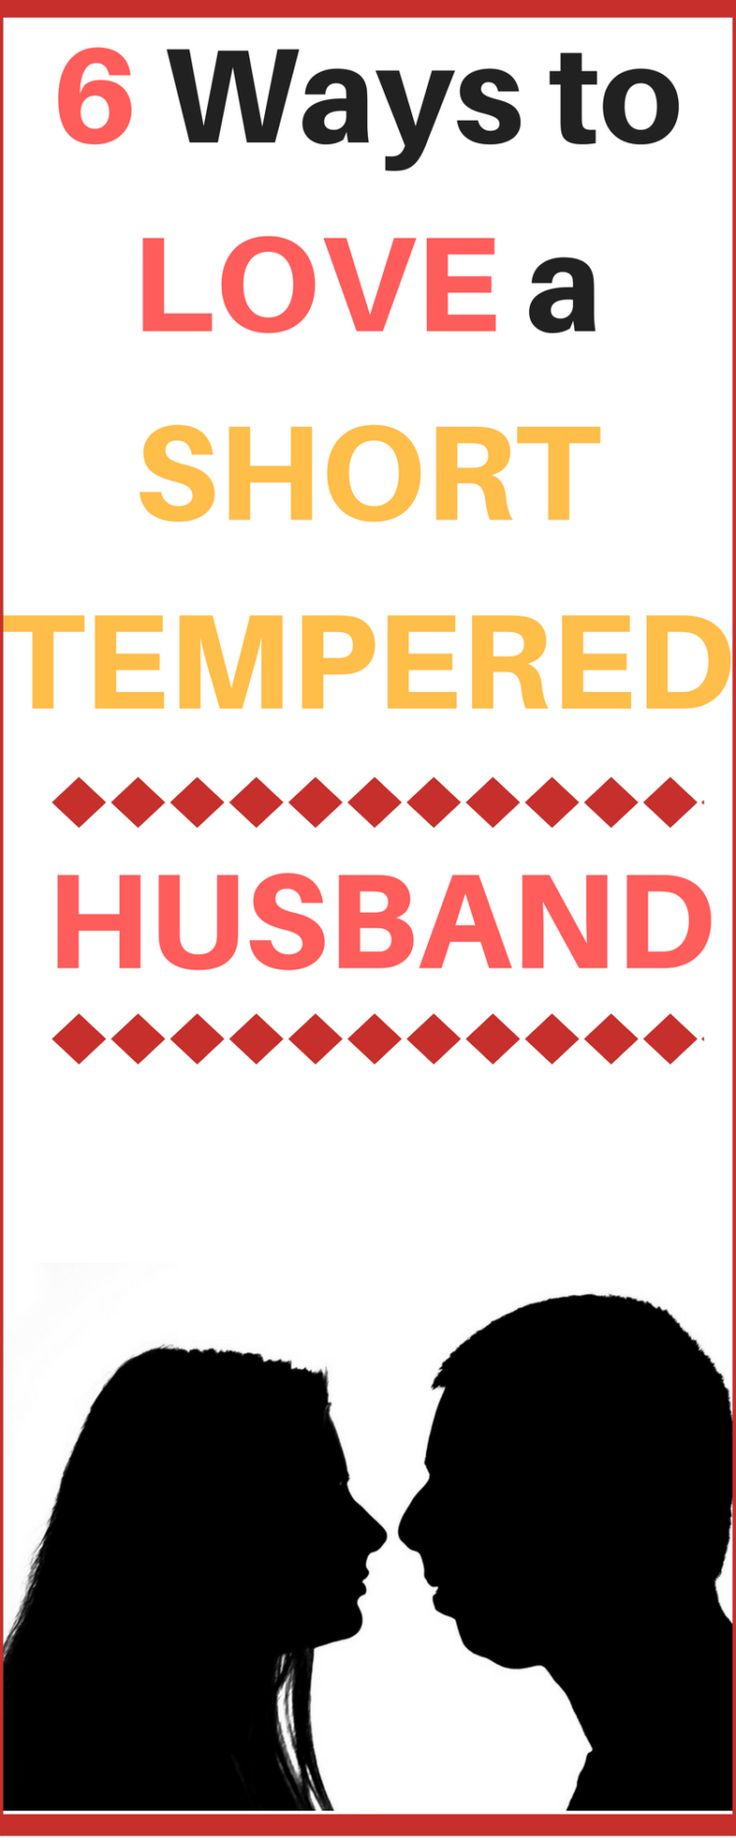 6 Ways to Deal with and Love a Short Tempered Husband